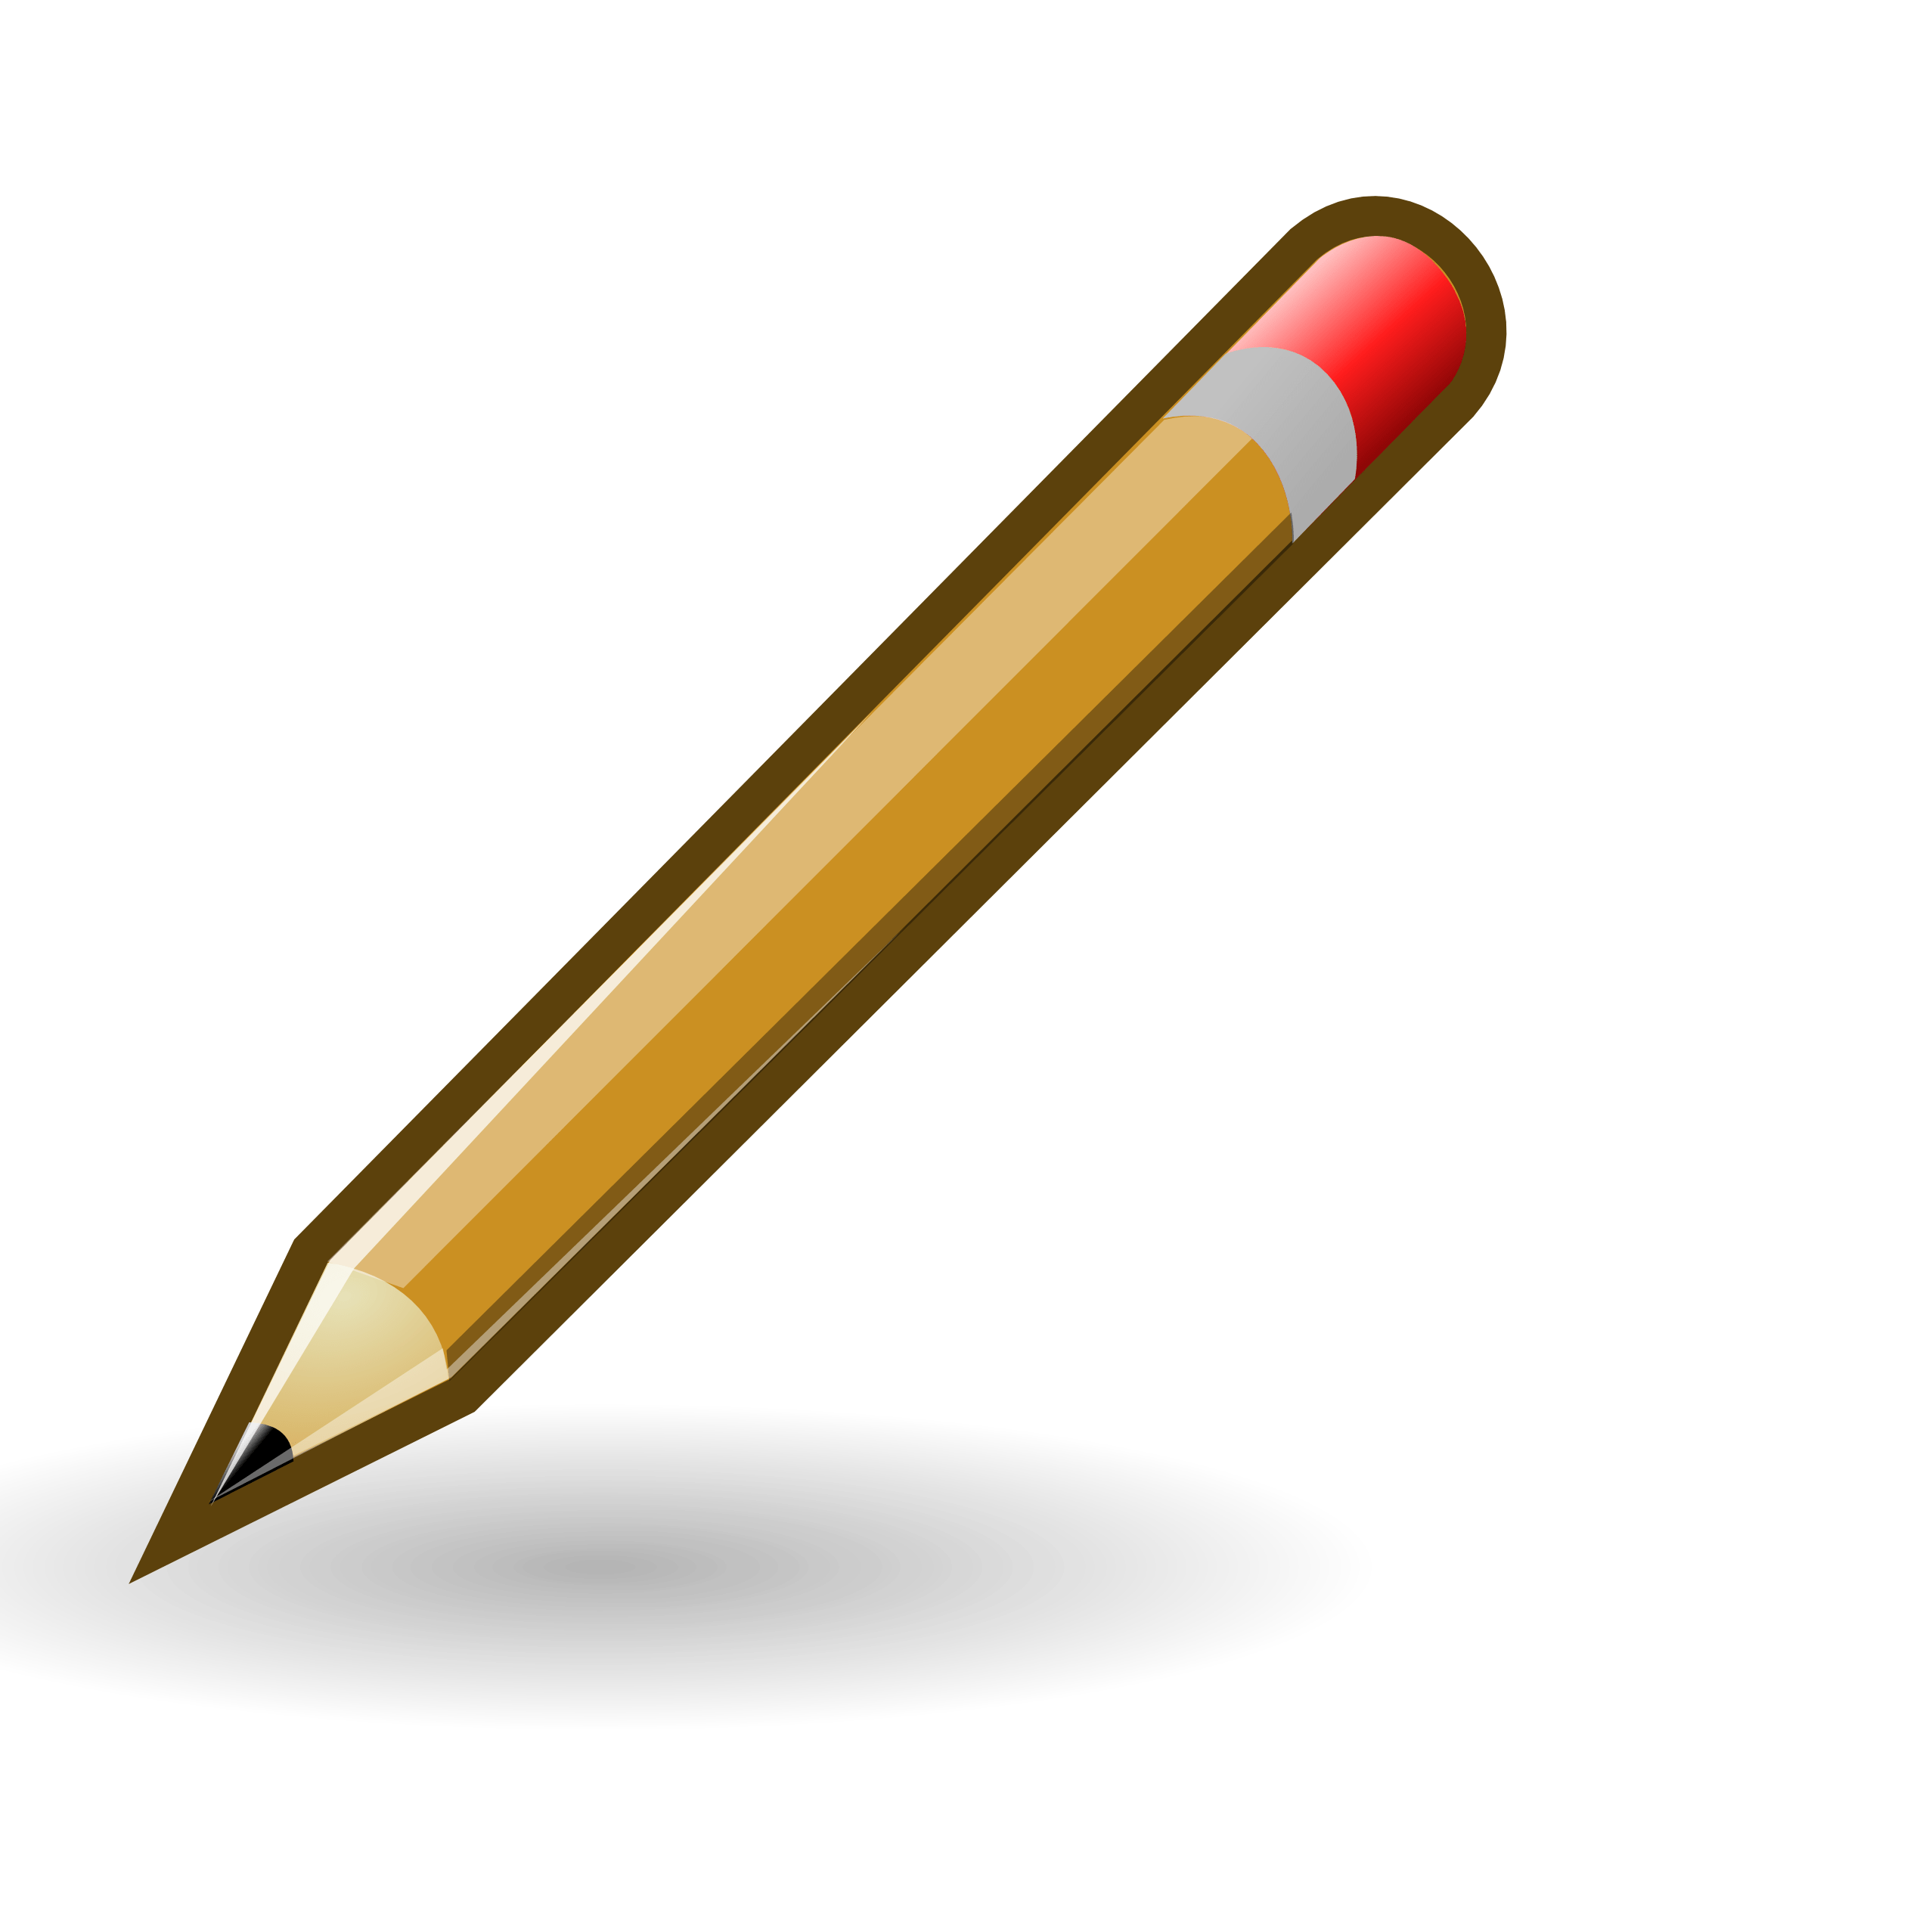 Pencil clipart colour. Small and in color